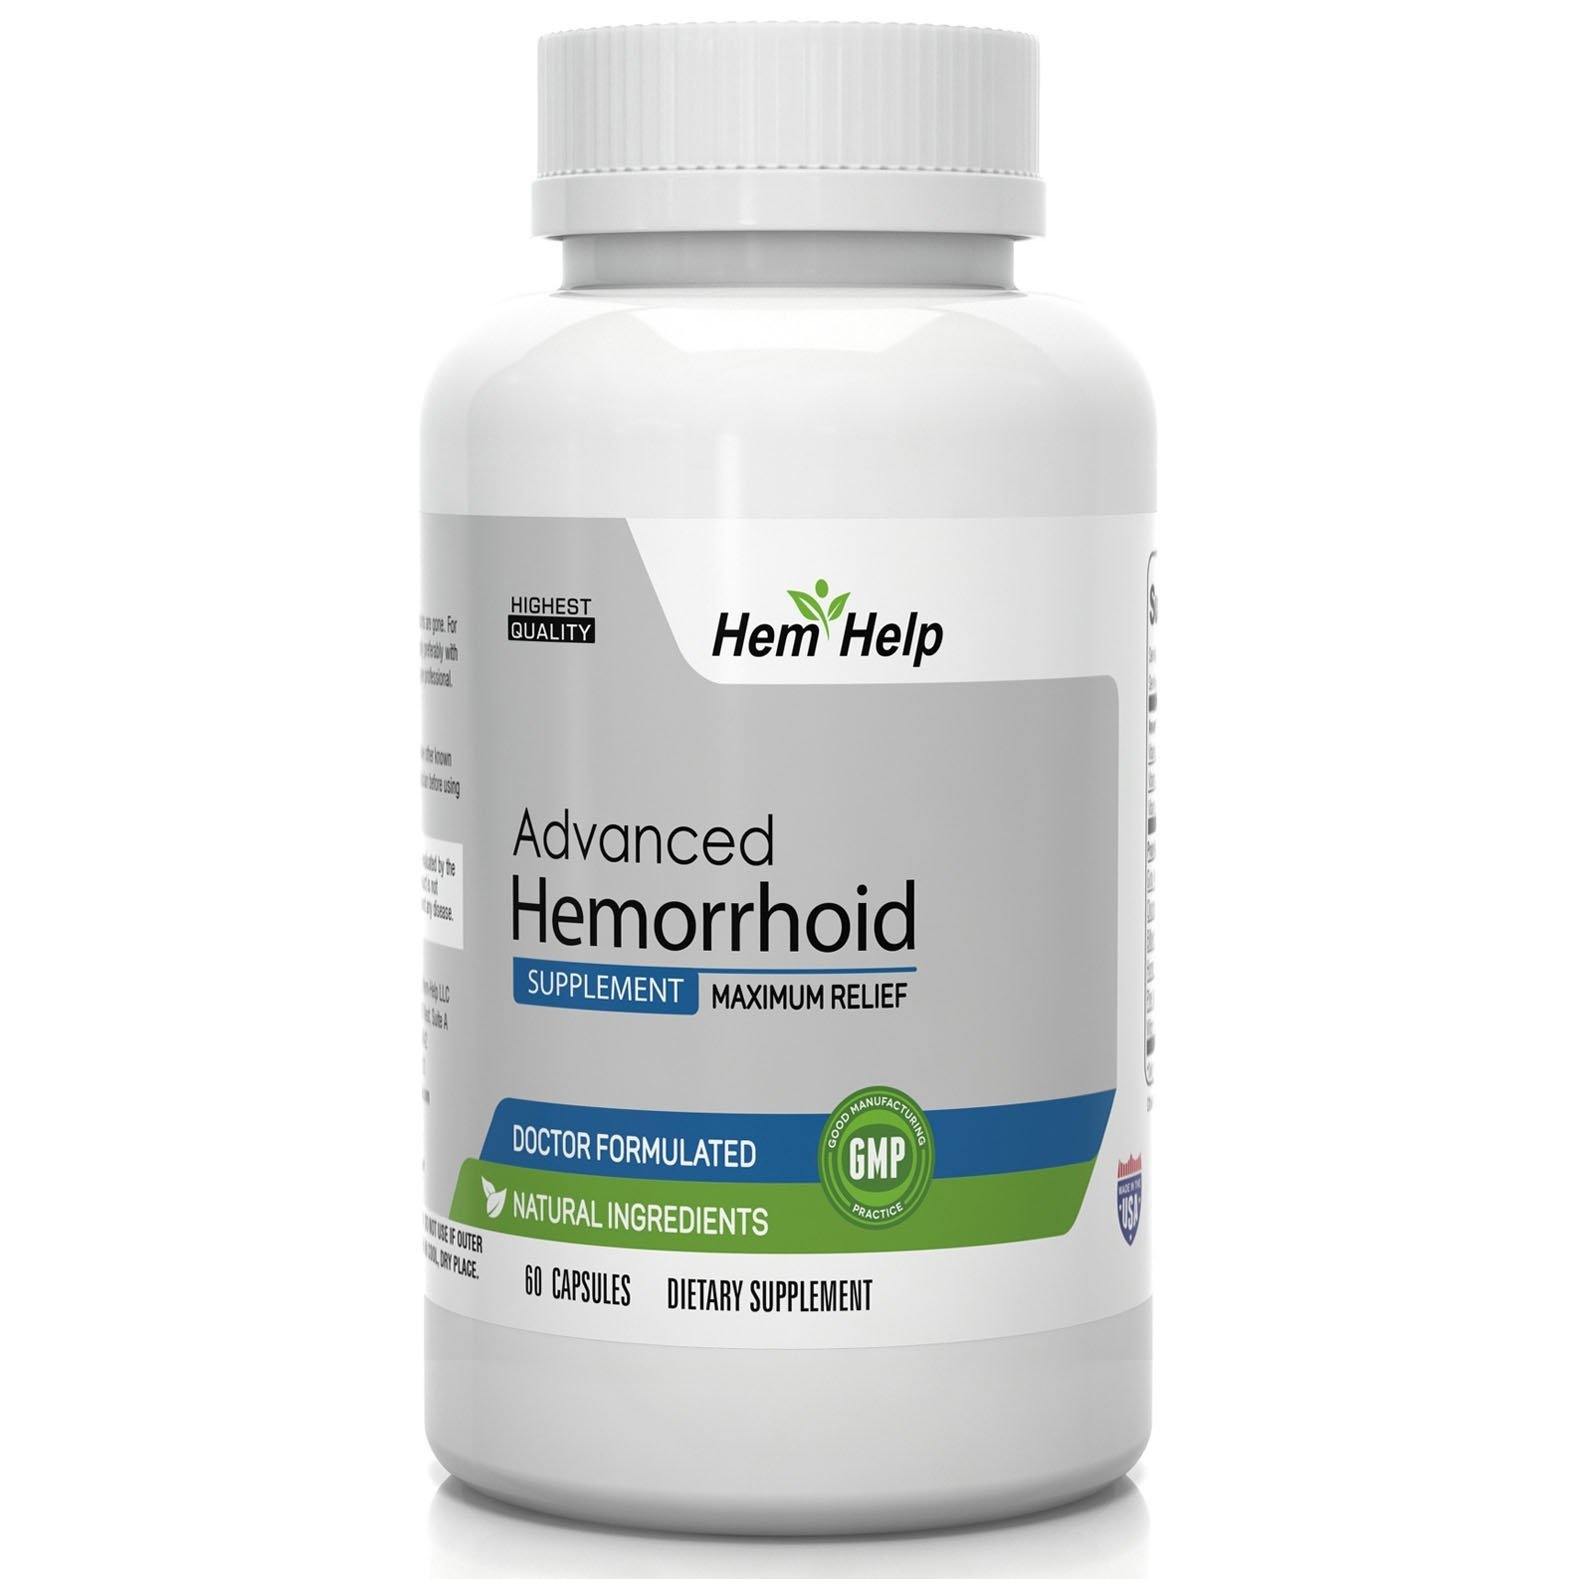 Hem-Help - Fast Action Hemorrhoid Relief Capsules w/ All Natural Formula for Quick Relief from Hemorrhoid Related Inflammation, Itching, Bleeding & Pain - 100% Money back Guarantee - 60 Capsules by Hem-Help